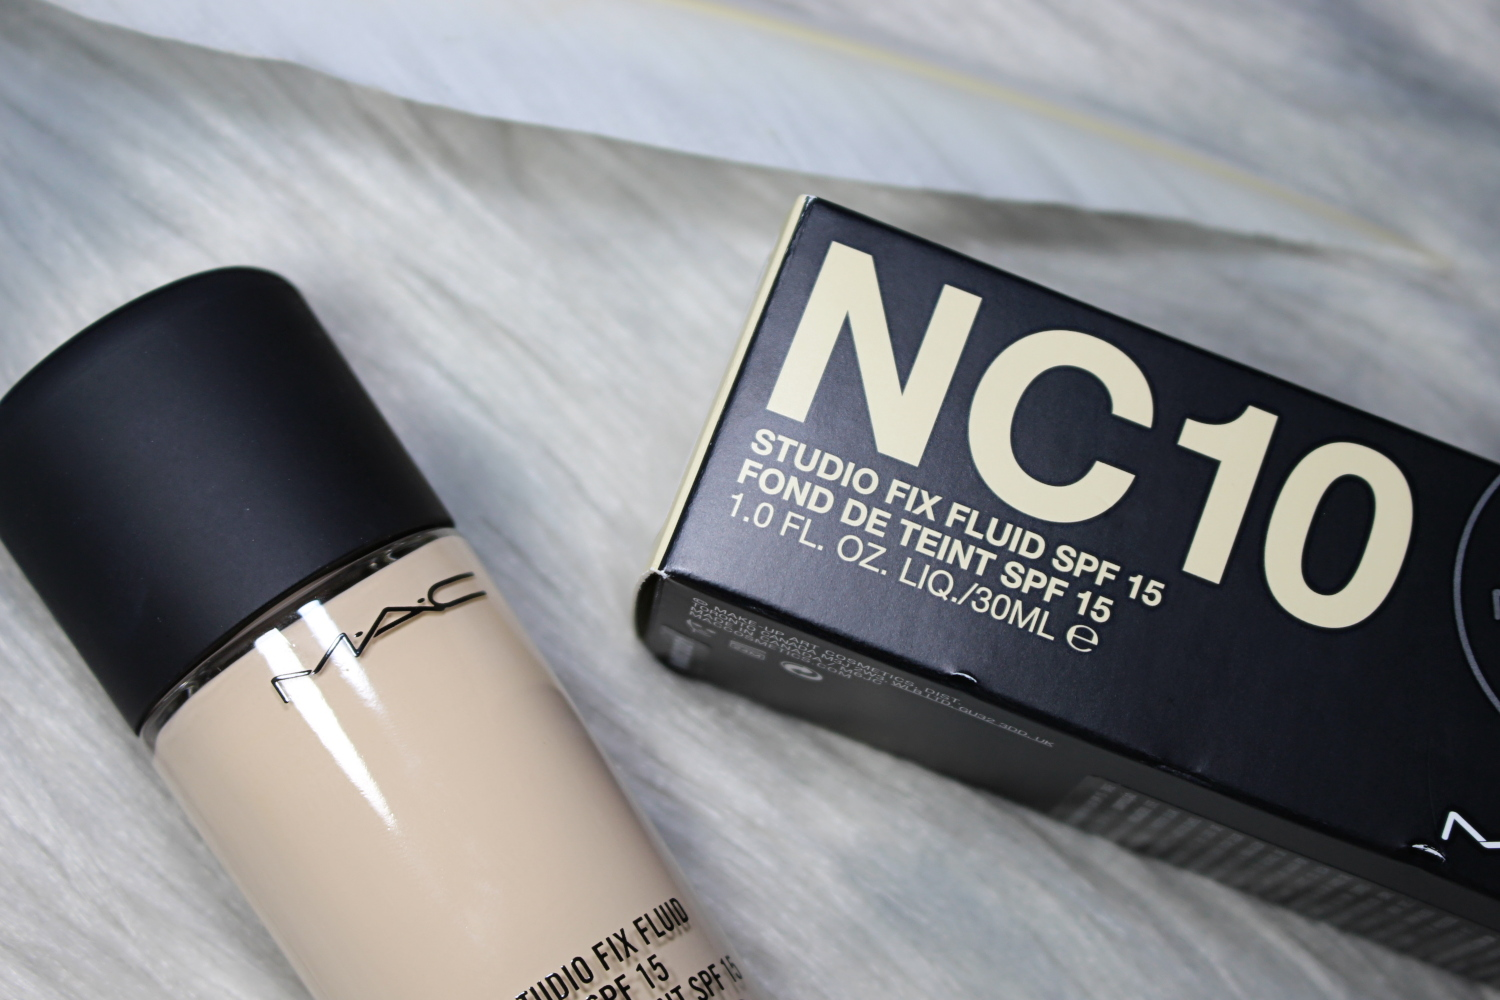 a bottle of mac cosmetics Mac Cosmetics Studio Fix Fluid Foundation In Shade NC 10  is laying on a gray fur